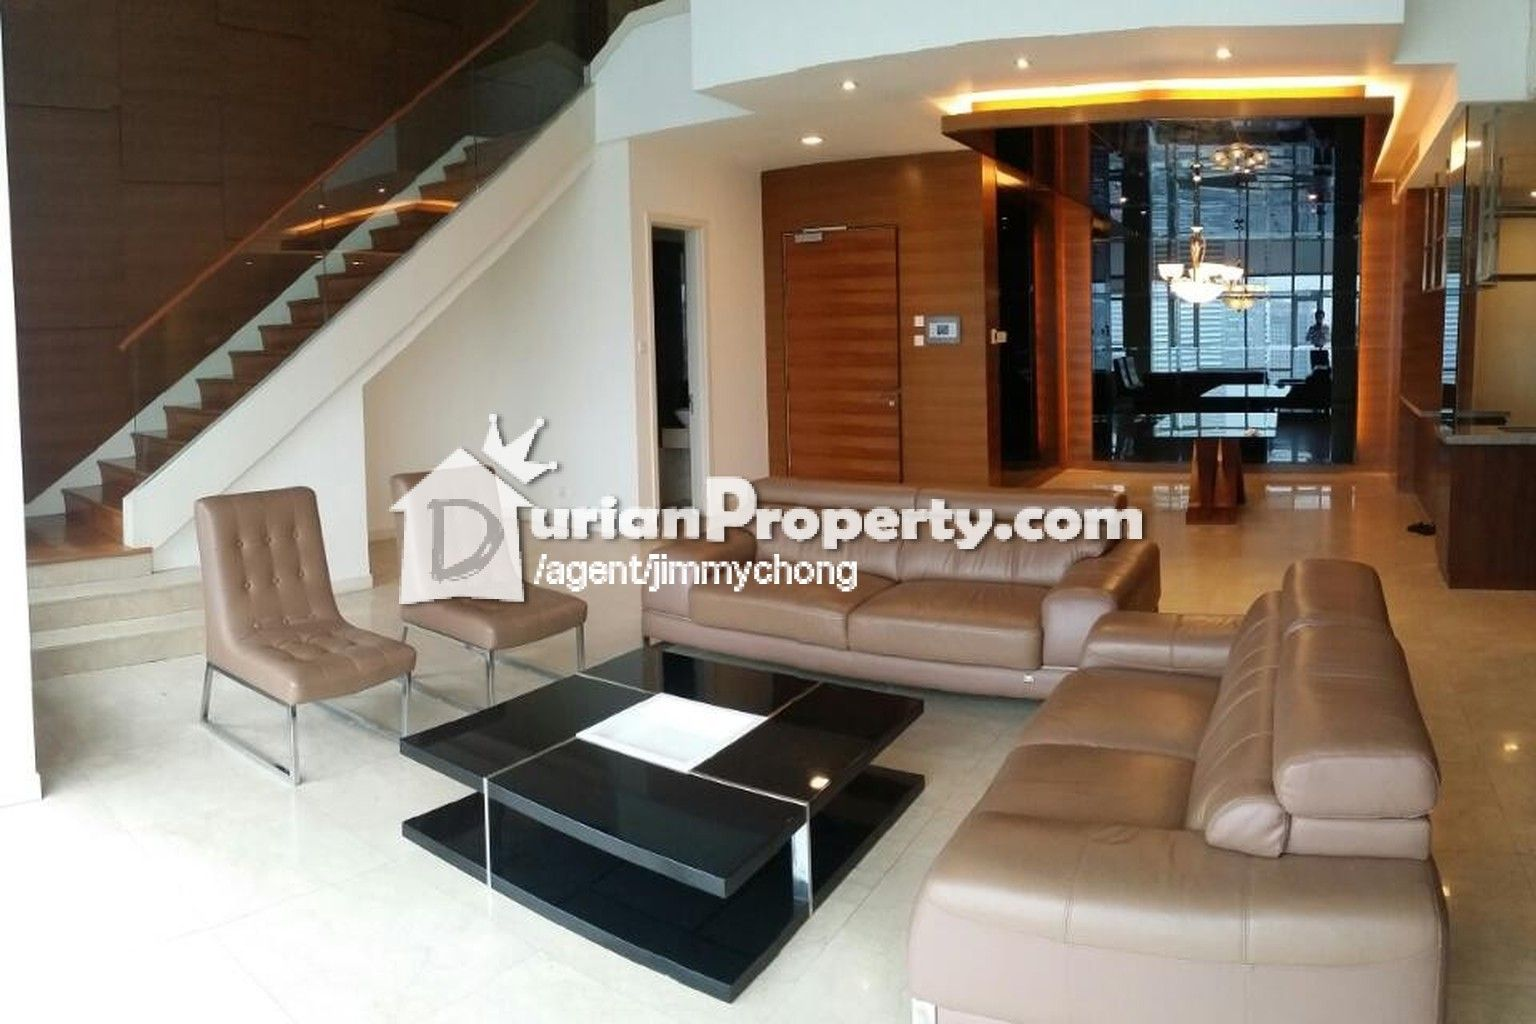 Penthouse For Sale At Binjai Residency Klcc For Rm10500000 By Jimmy Chong Durianproperty Penthouse For Sale Property For Sale Property For Rent